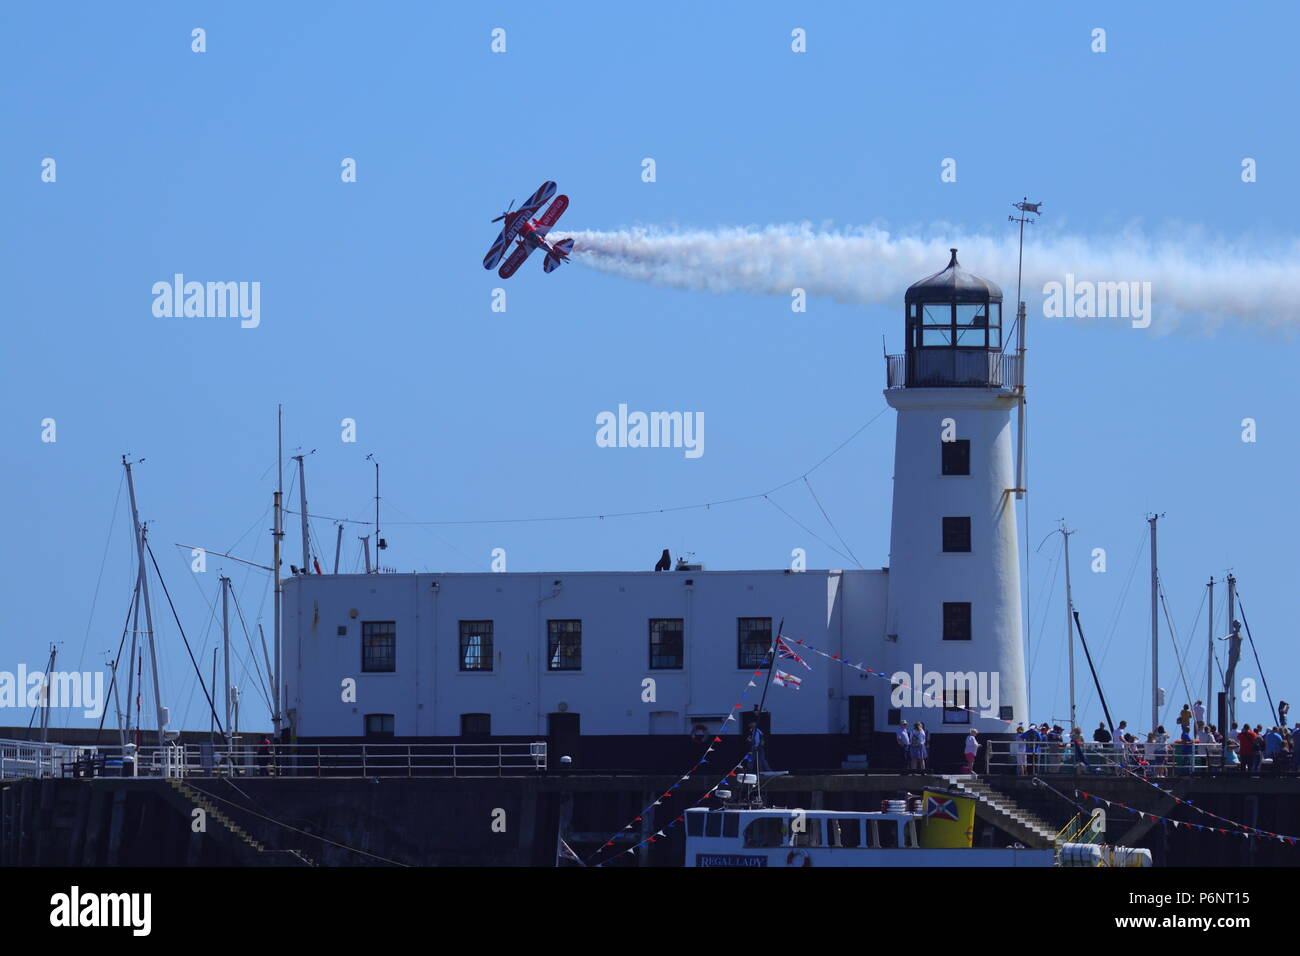 Rich Goodwin's Bi-plane flypasts the lighthouse during one of his acrobatic aerial displays at Scarborough Armed Forces Day. - Stock Image